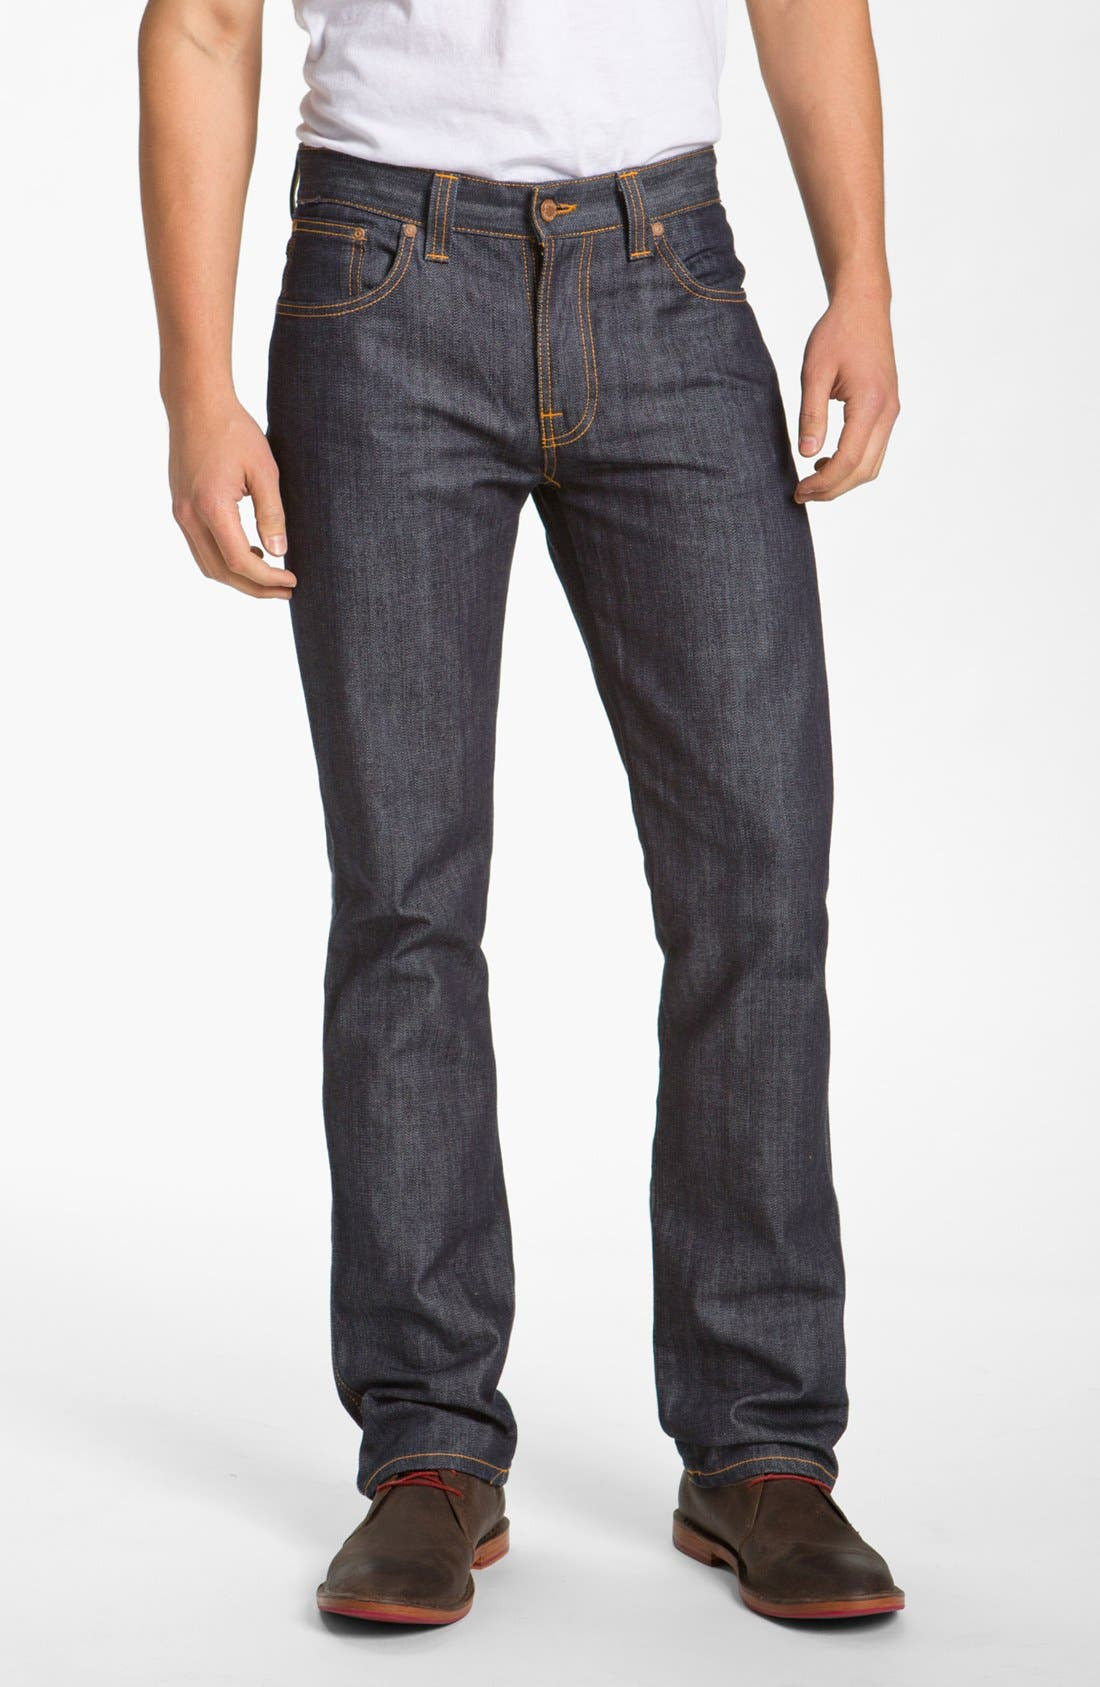 Alternate Image 1 Selected - Nudie Jeans 'Slim Jim' Slim Fit Jeans (Organic Dry Broken Twill)